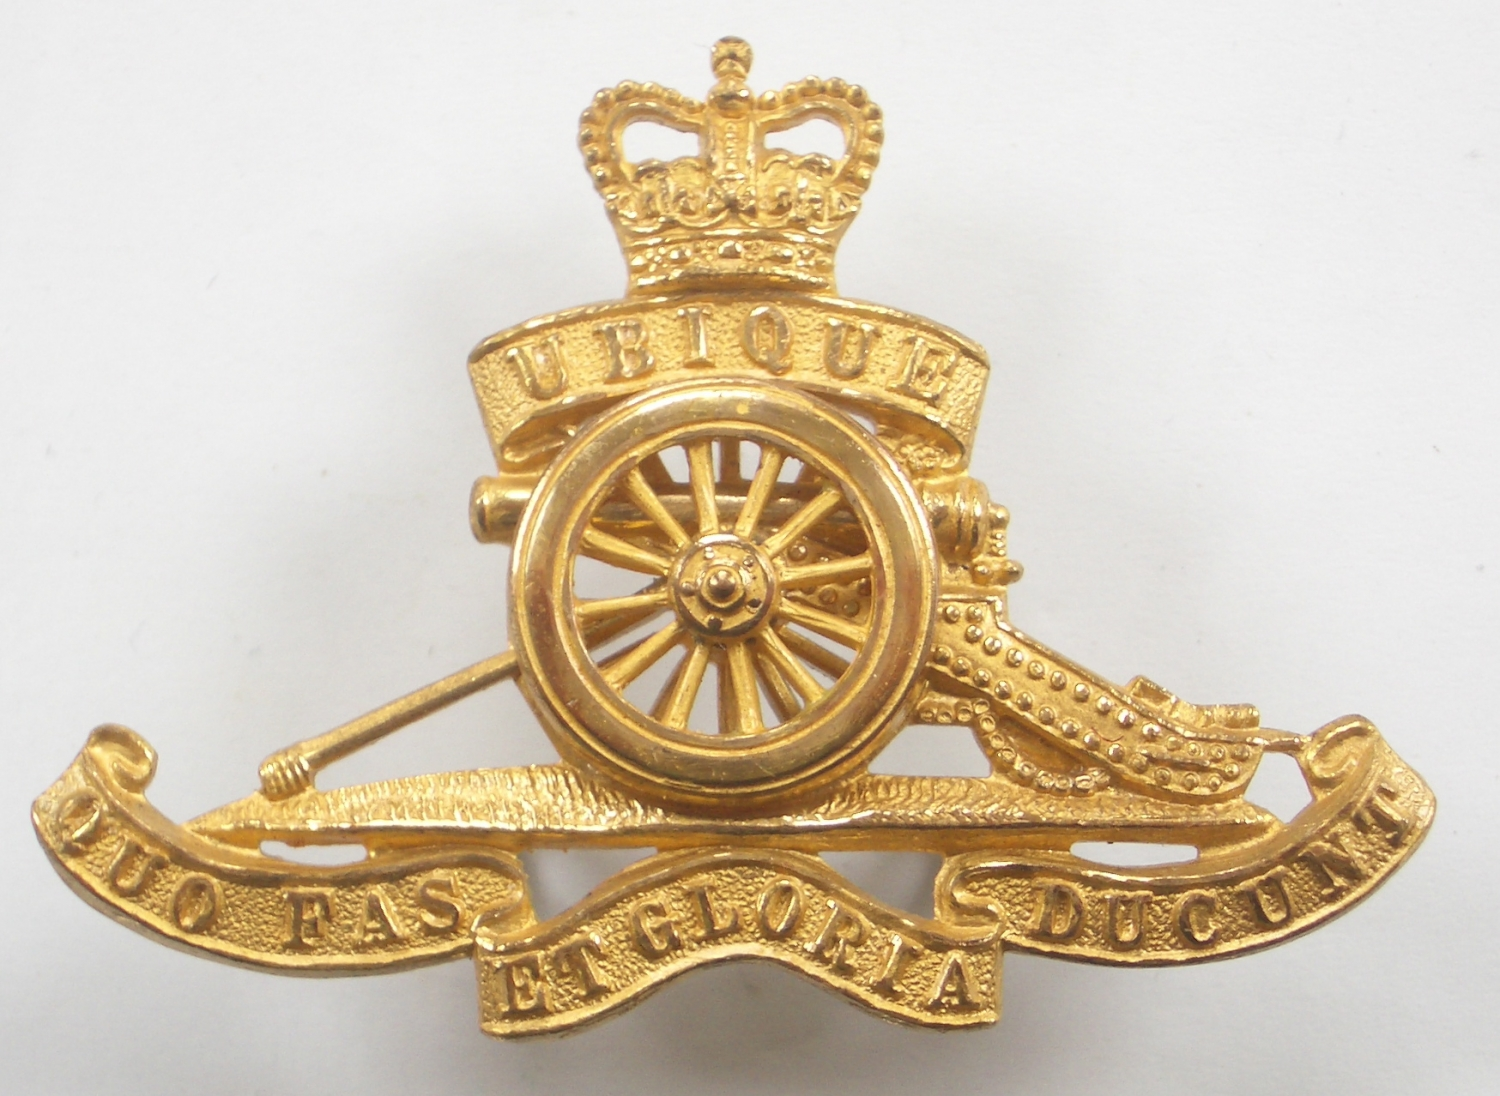 Royal Artillery EIIR gilt cap badge by Gaunt